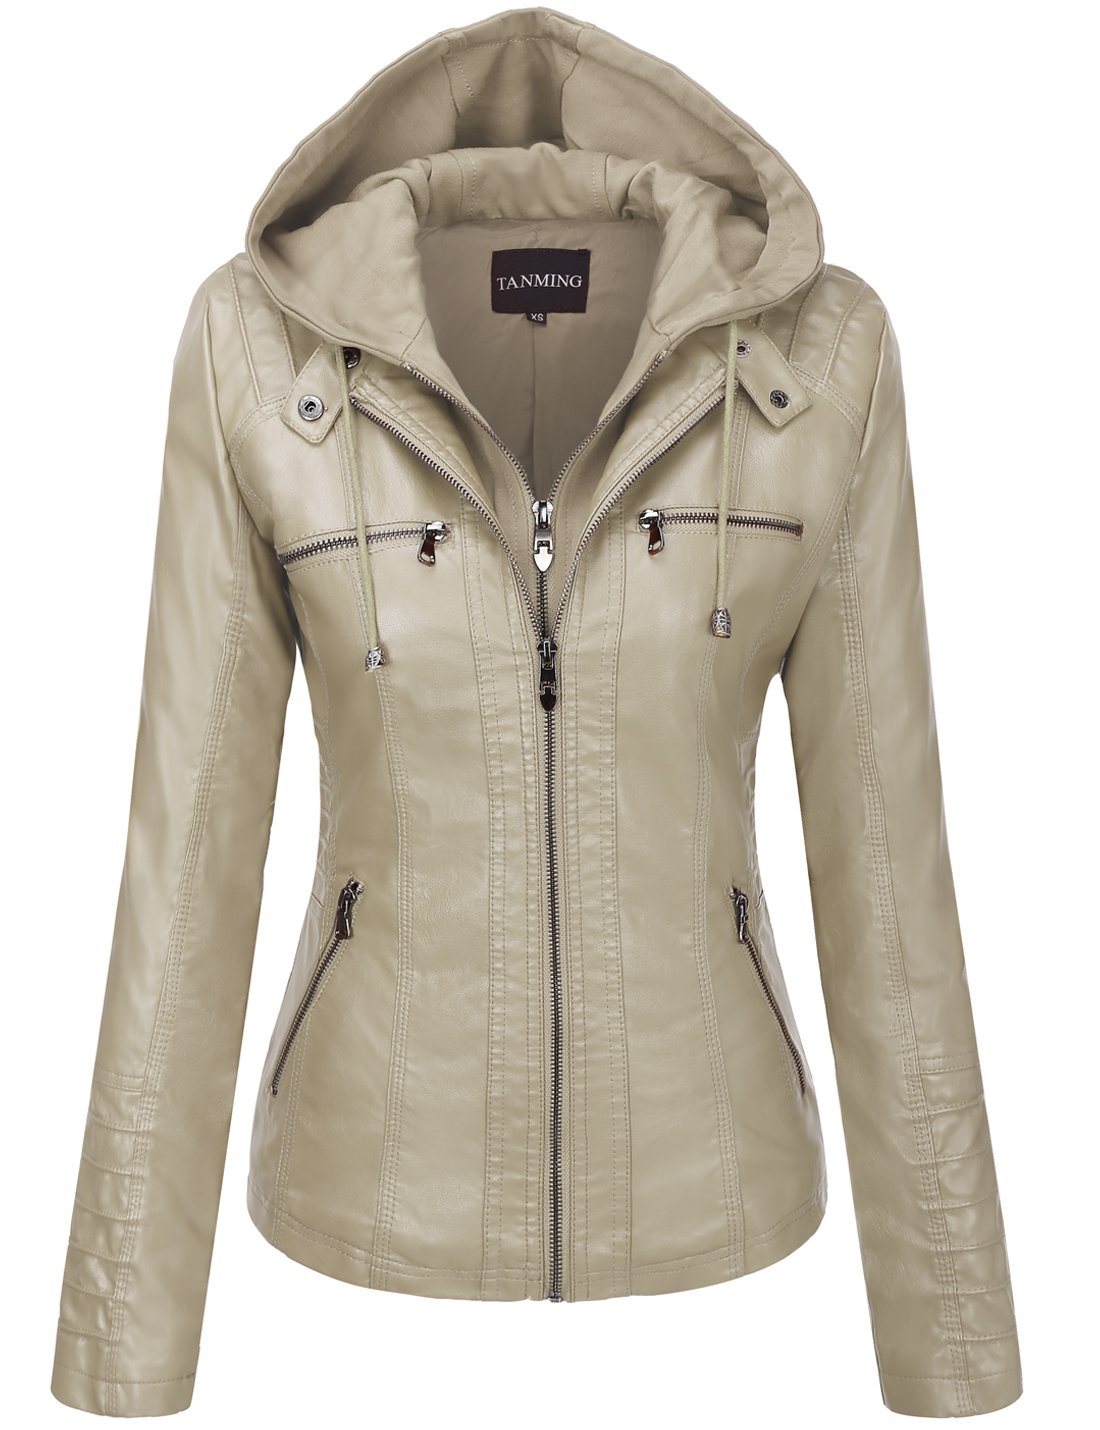 Tanming Women's Hooded Faux Leather Jackets (XX-Large, Apricot) by Tanming